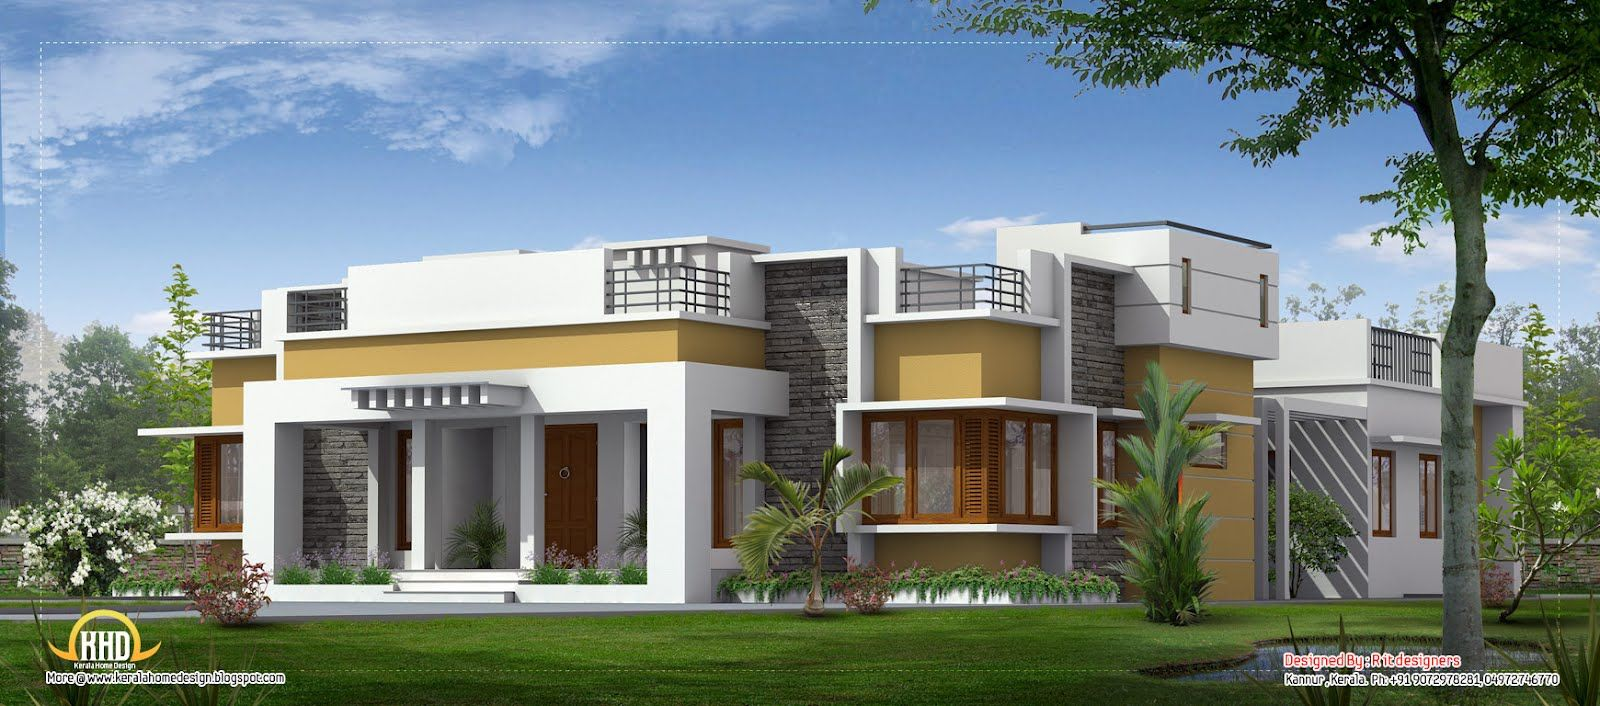 Single level designer home single floor house plans for Single level house designs